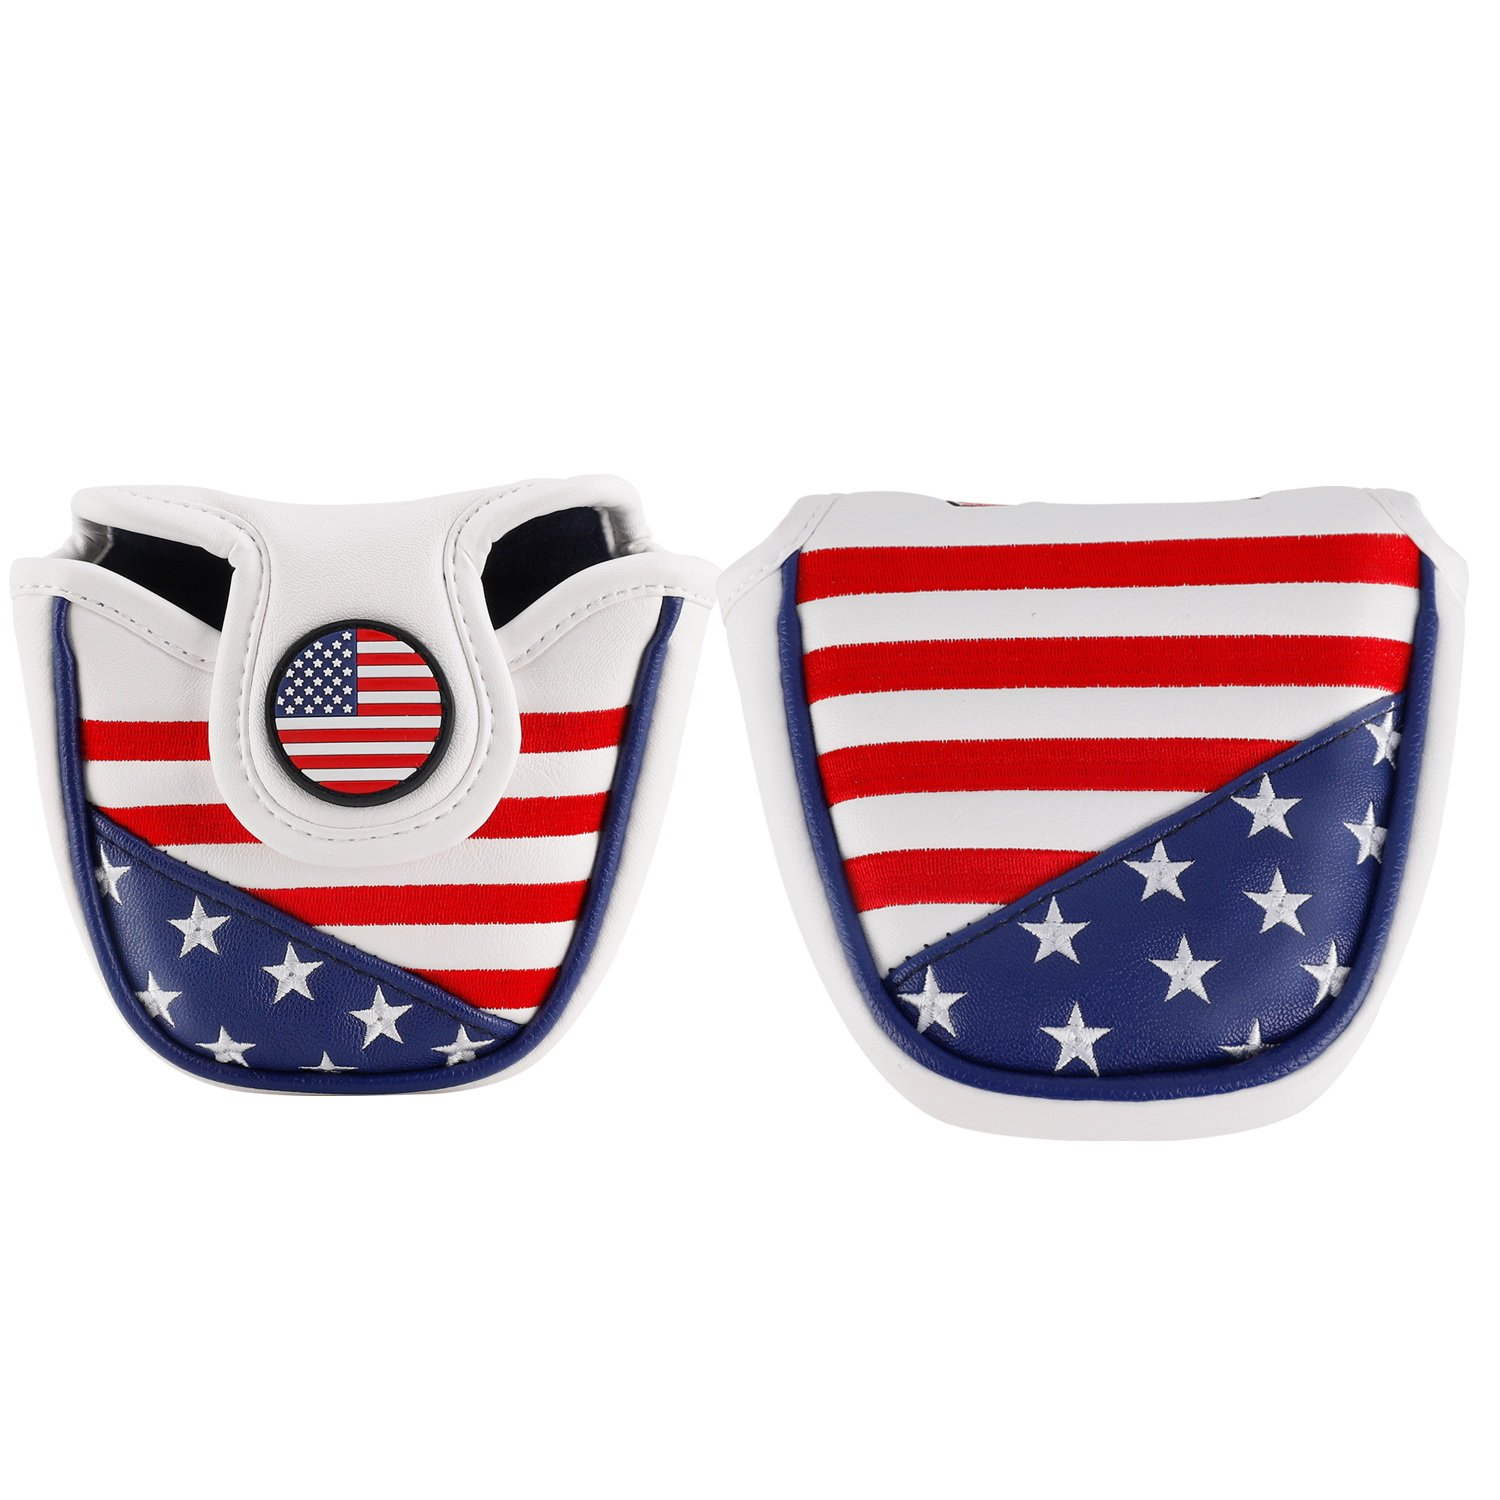 montela golf USA America Mallet Putter Cover Fit #7 Putter by montela golf (Image #2)